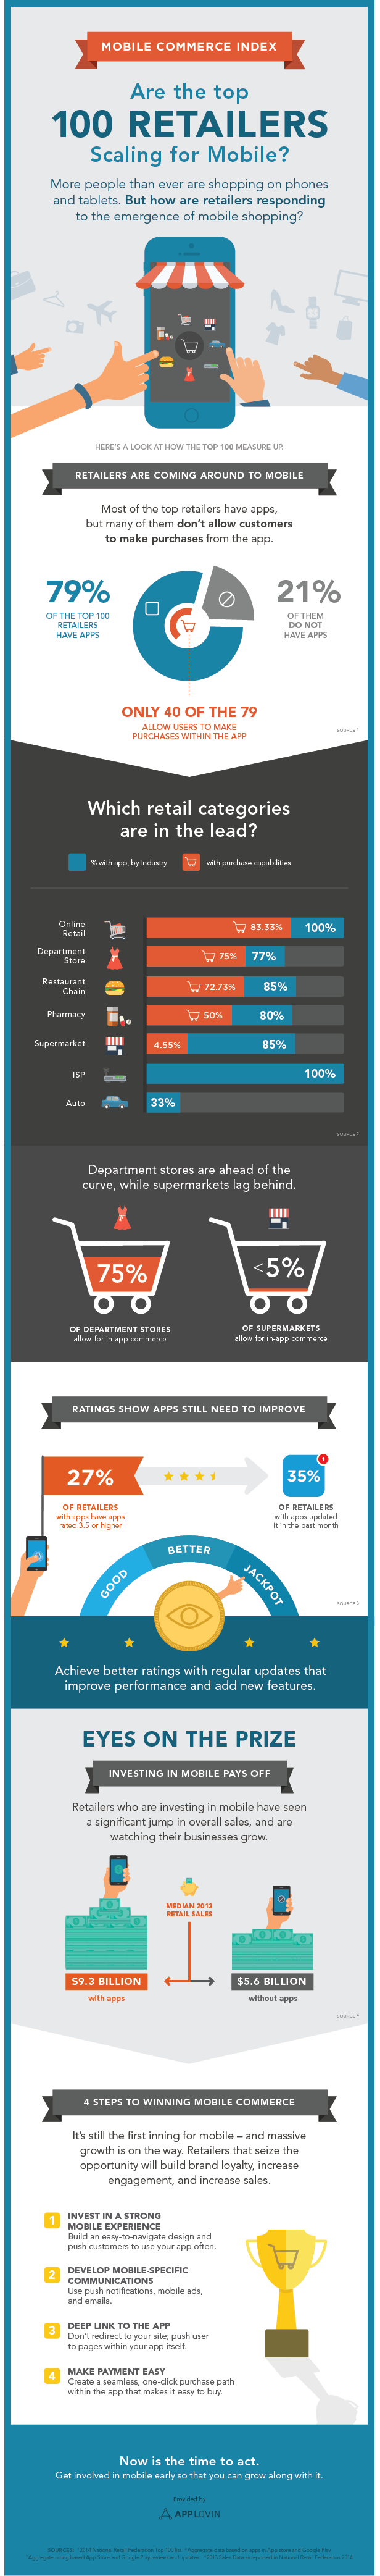 mobile-commerce-index-2014-infographic